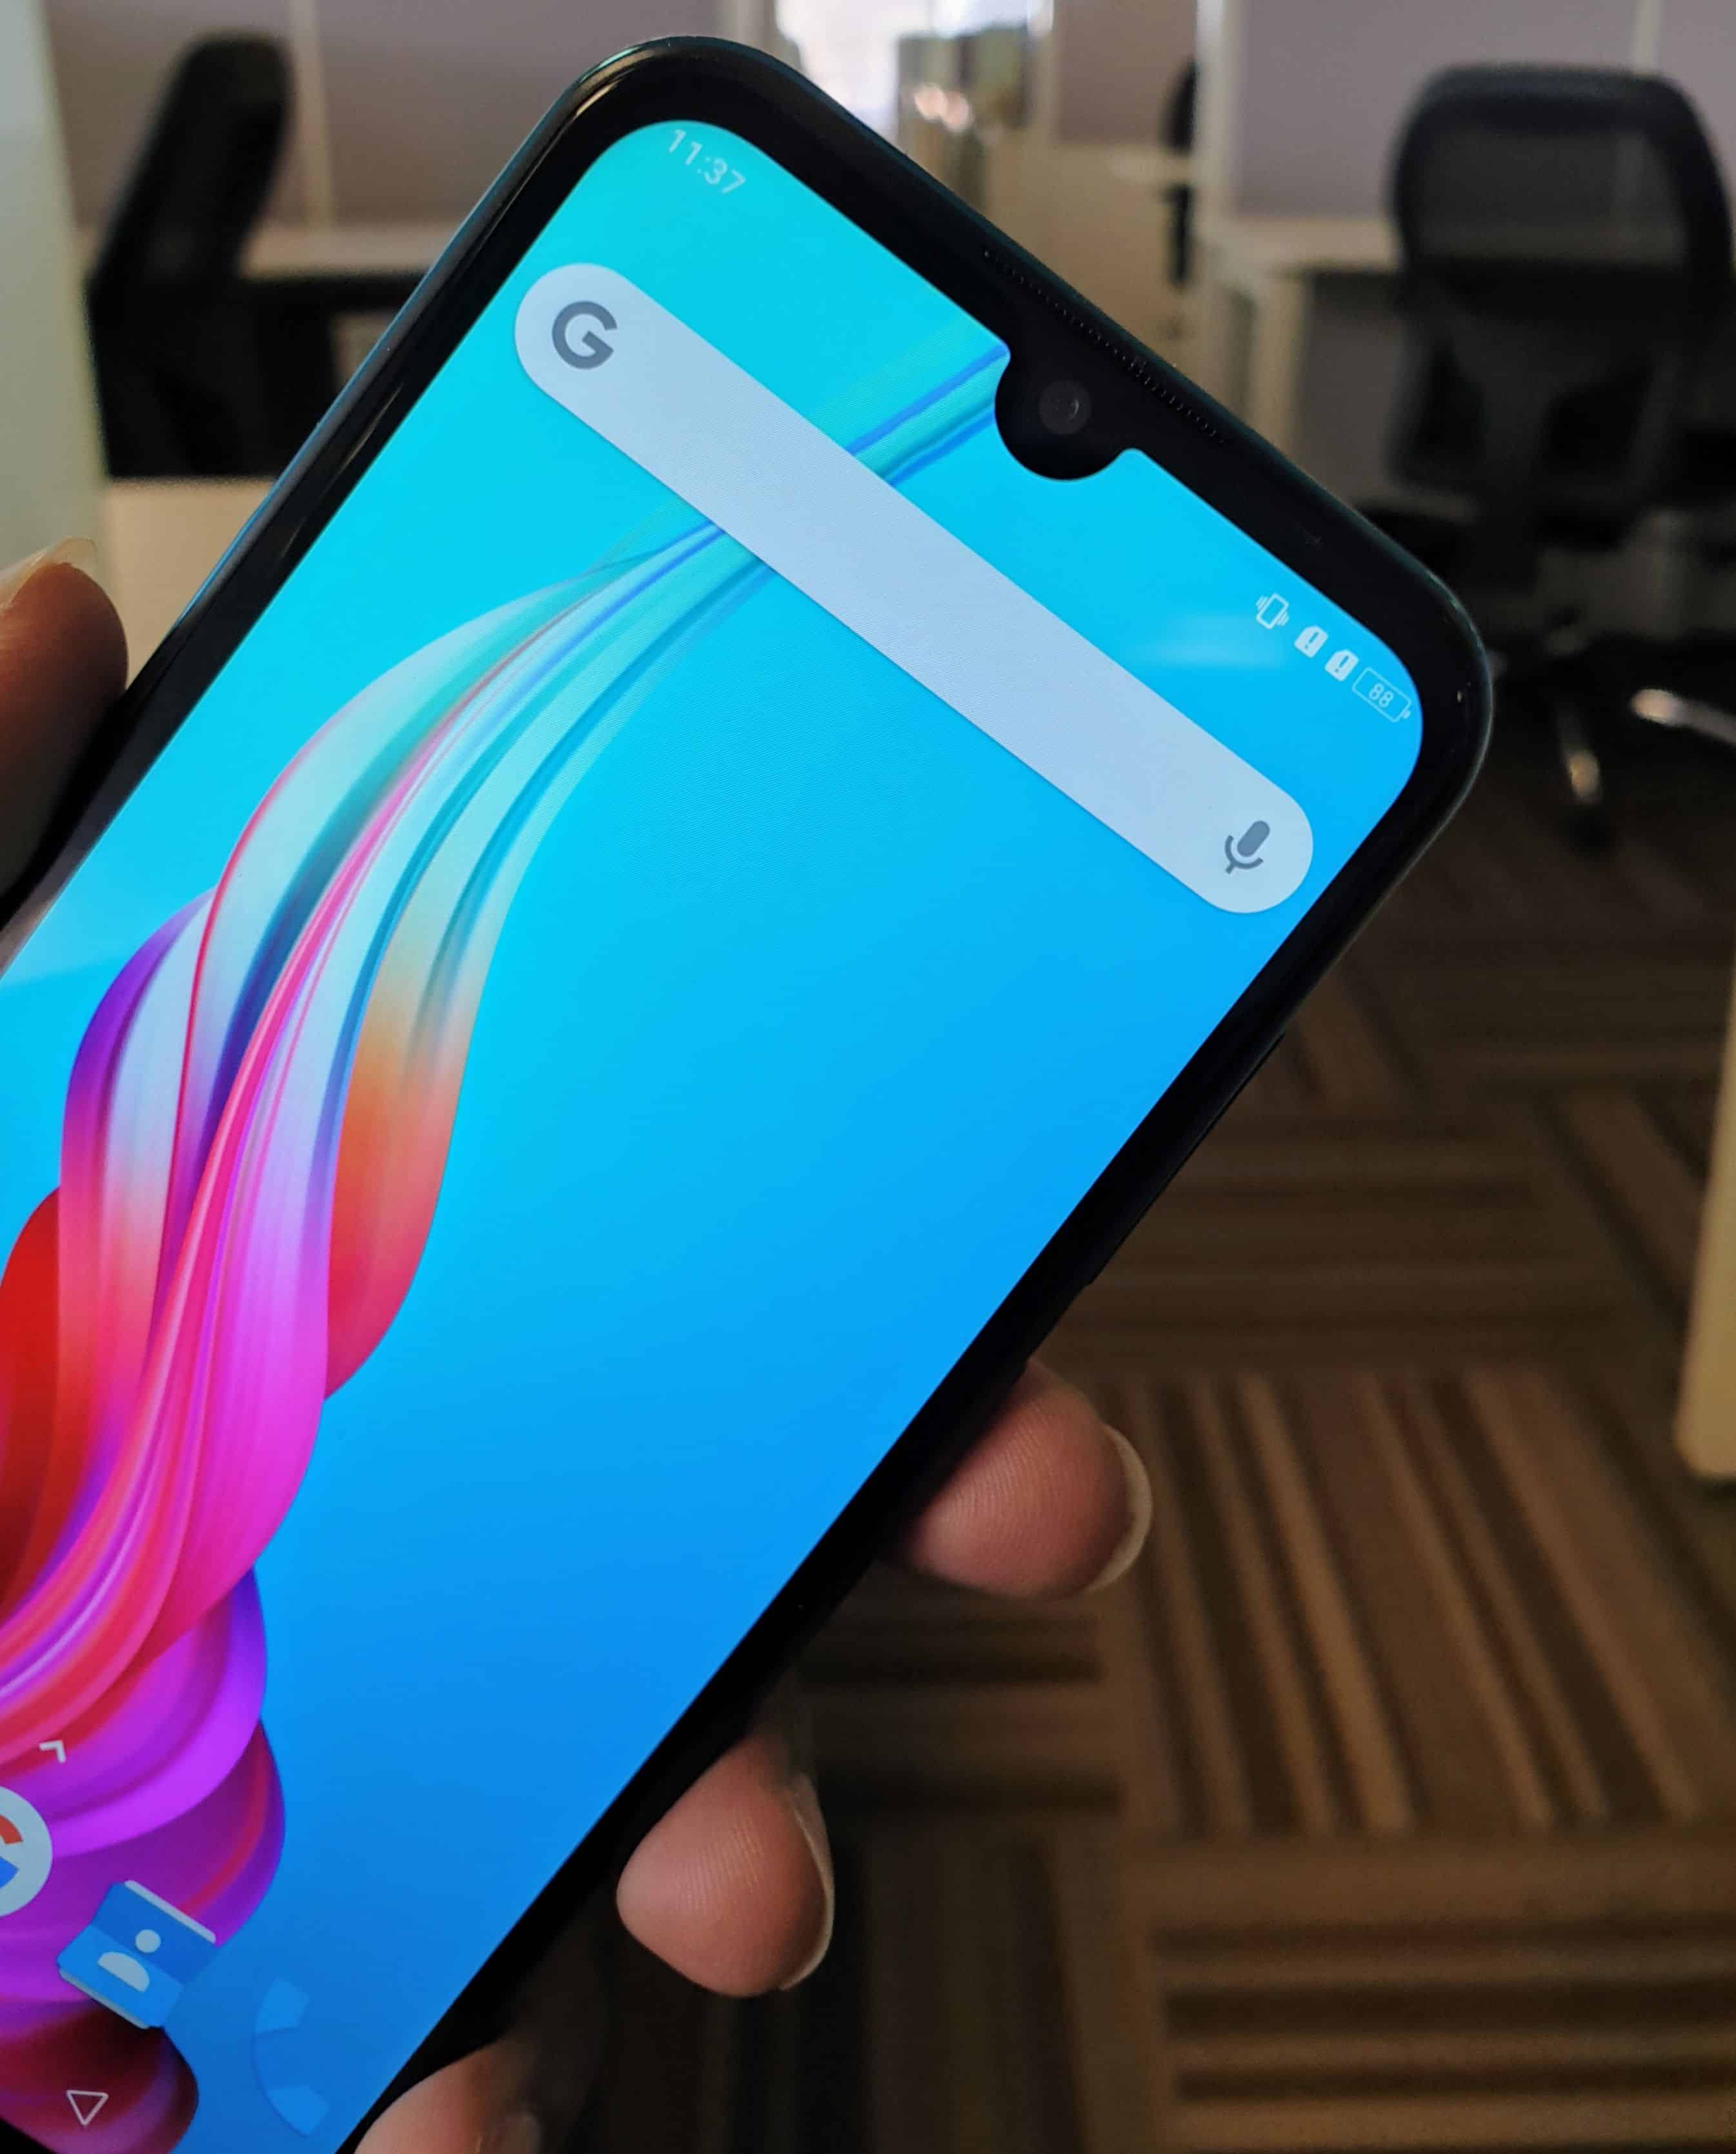 Coolpad Cool 3 Plus Review - Should You Buy this Entry-level Phone? - 2